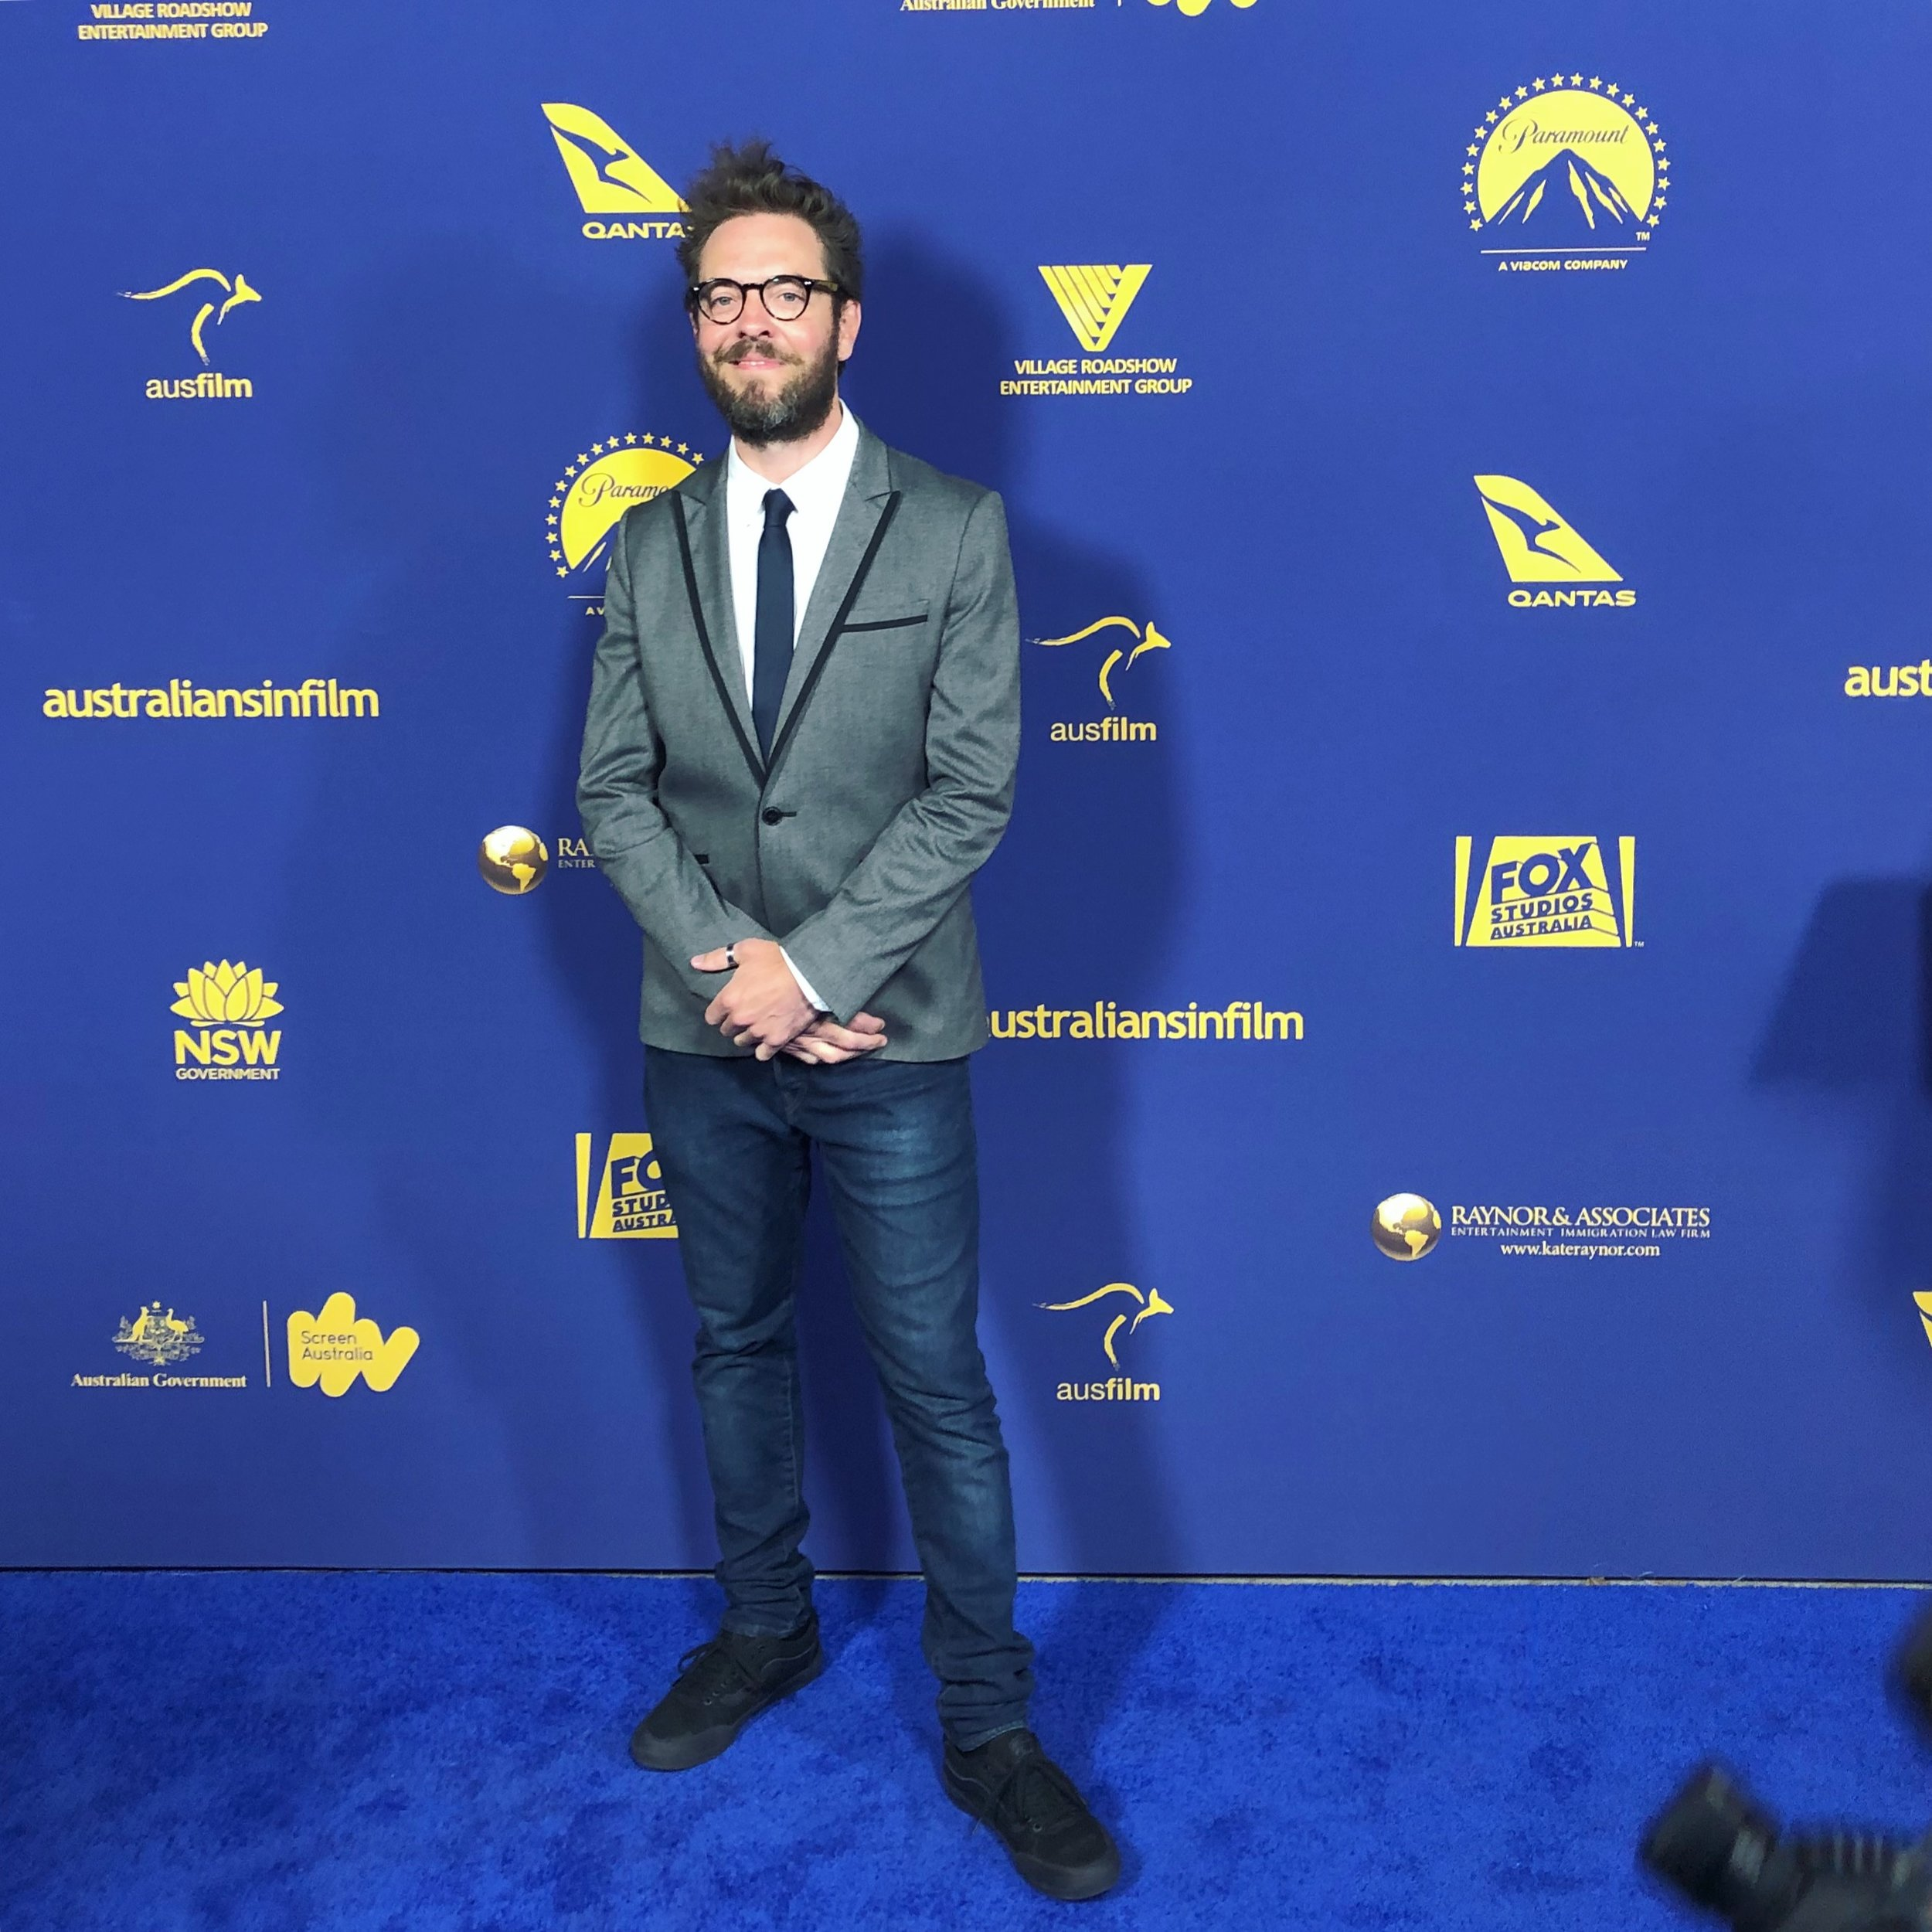 James attends the 2018 - 7th Annual Australians in Film Gala, Paramount Studios, Hollywood, Los Angeles.